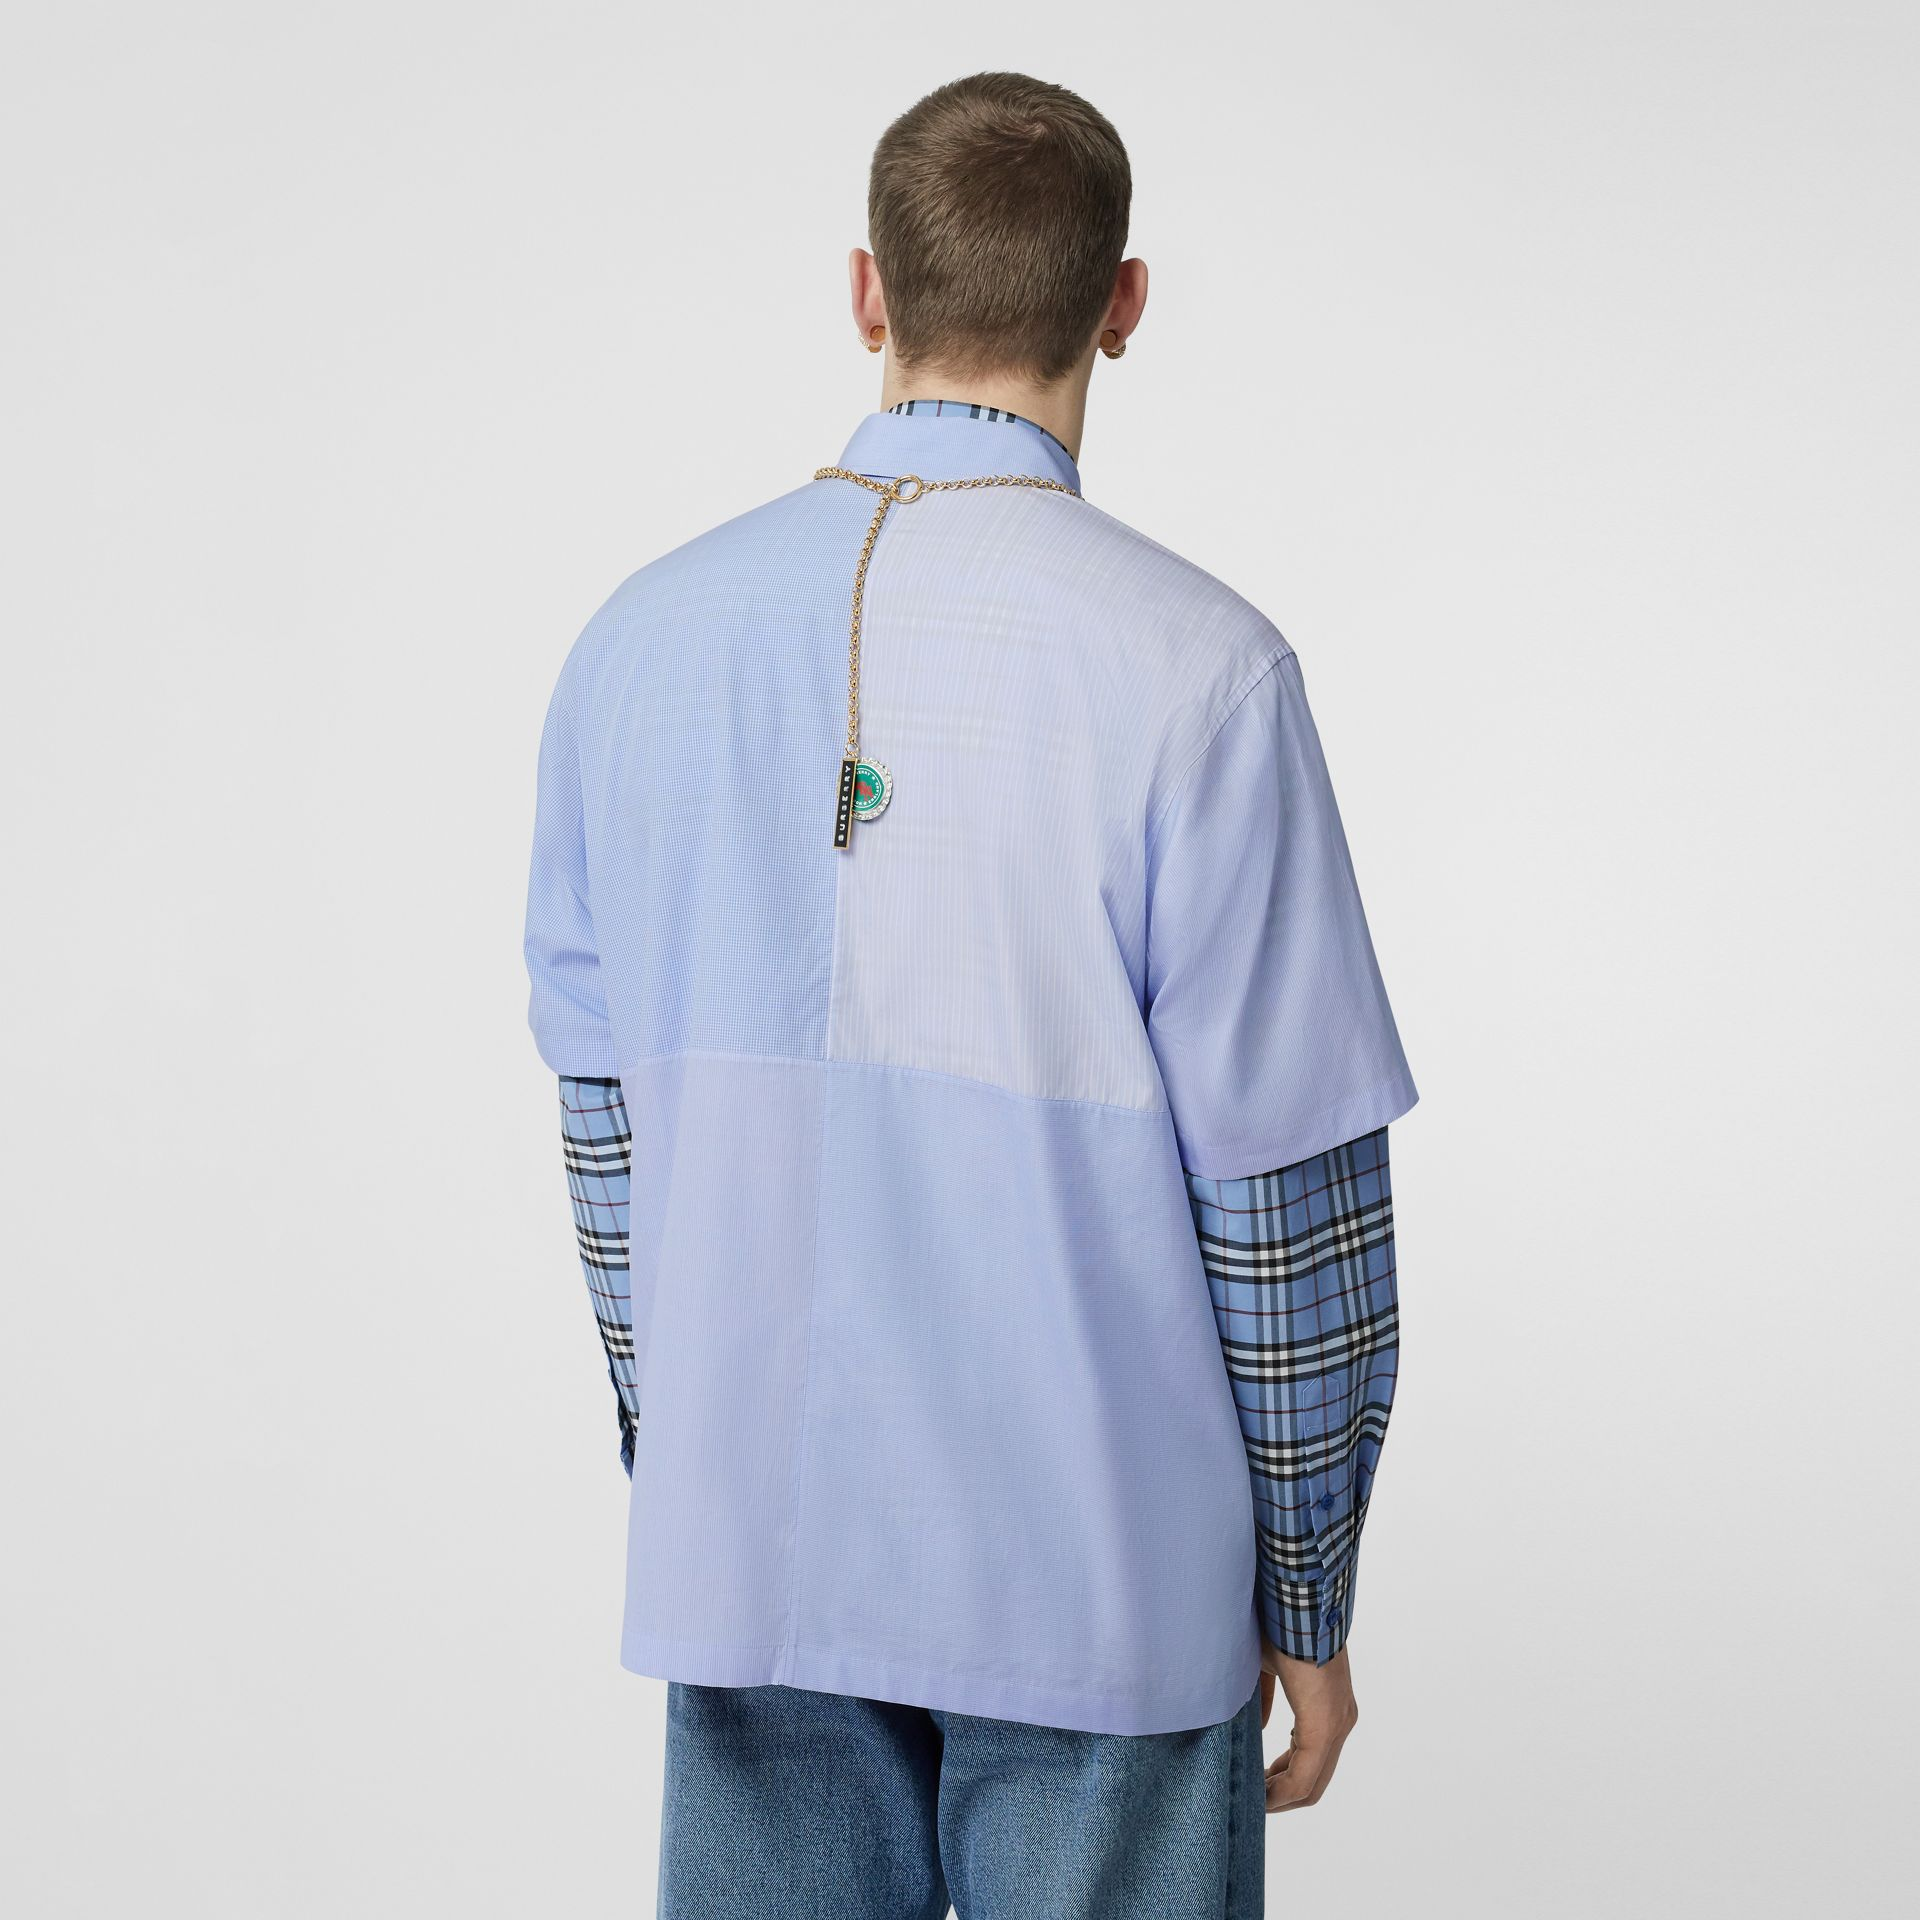 Short-sleeve Logo Graphic Patchwork Cotton Shirt in Pale Blue - Men | Burberry - gallery image 2